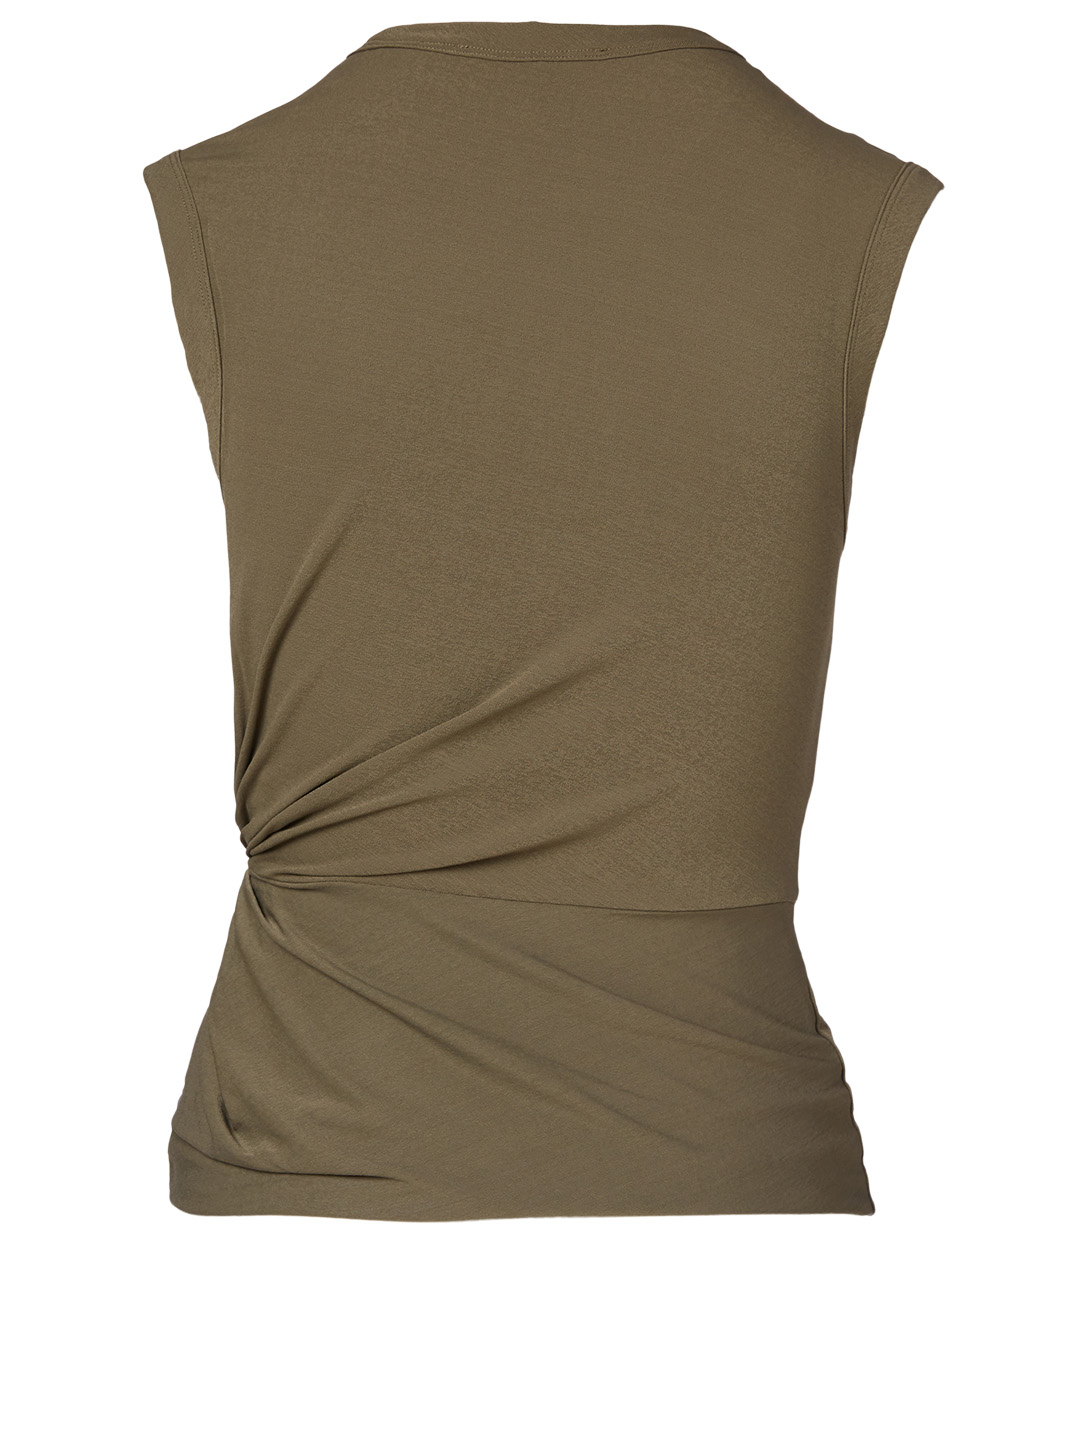 ALEXANDERWANG.T Crepe Twisted Sleeveless Top Women's Green